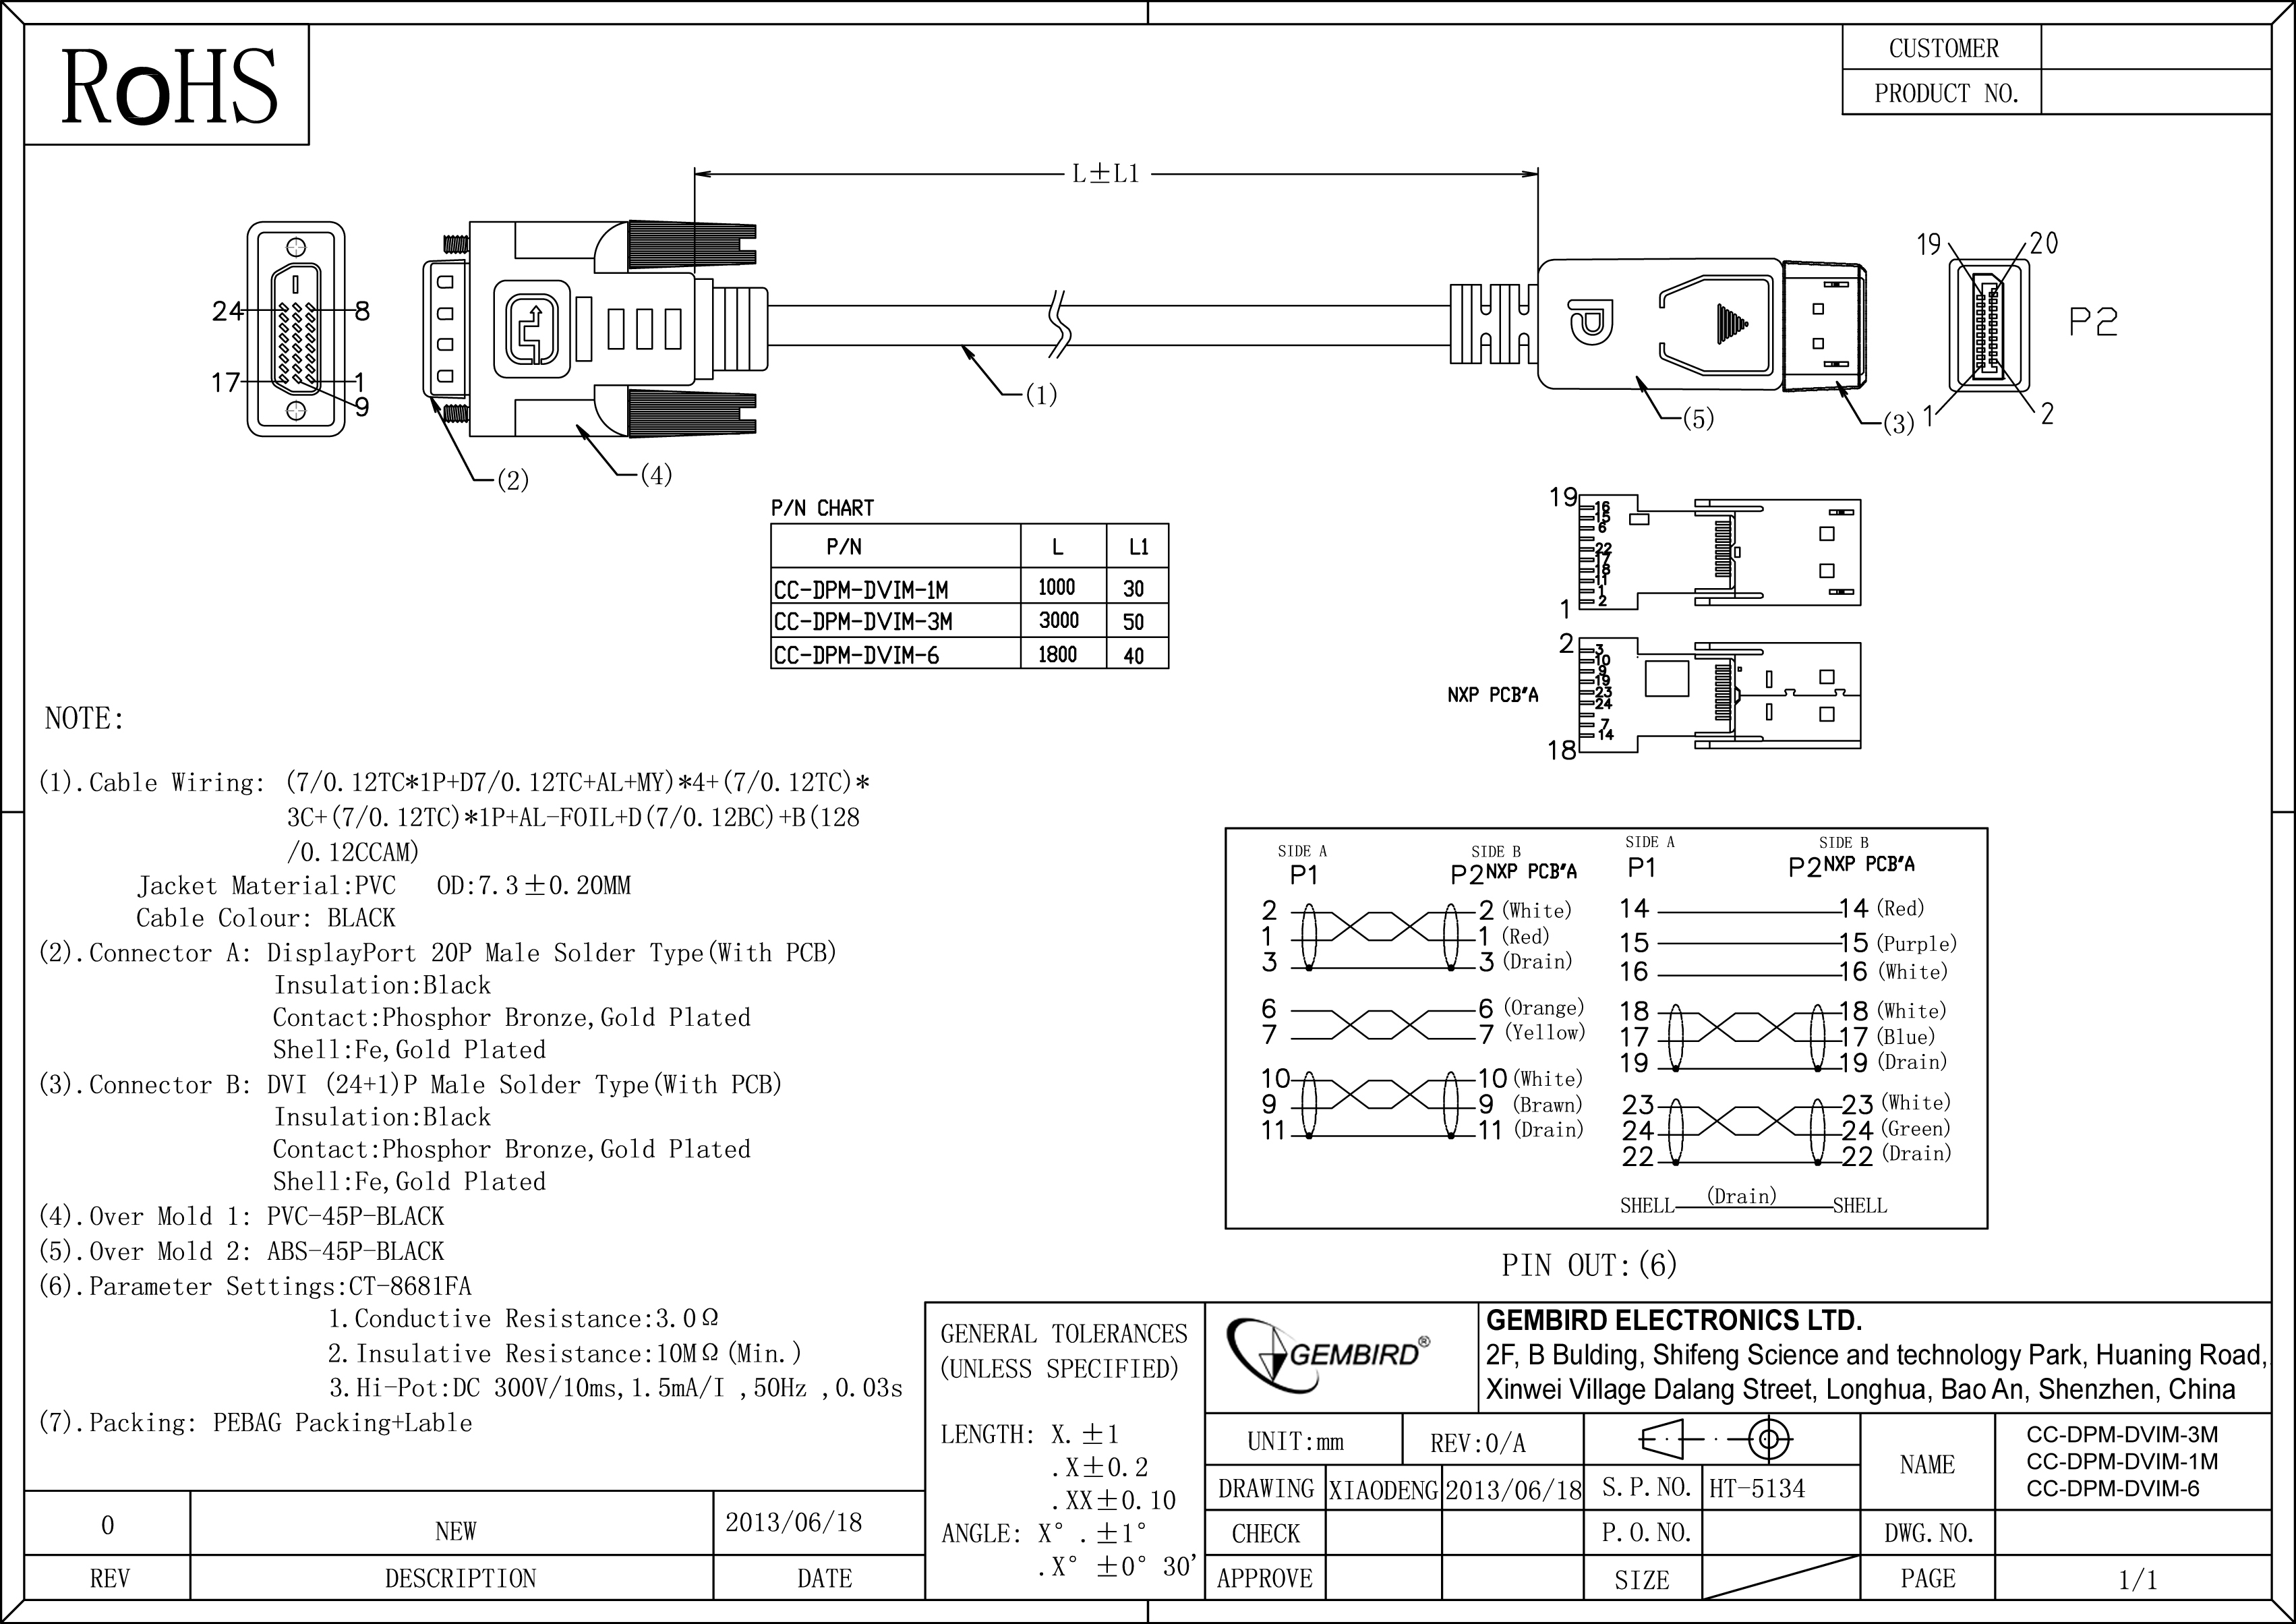 cf_additional_info---788c9111-e670-4fa4-906e-df3fabc442f5 Usb Male To Wiring Diagram on usb plug wiring diagram, mini usb wiring diagram, usb 2.0 dimensions, usb 3 pinout, micro usb wiring diagram, usb pin diagram, usb port wiring-diagram, usb female pinout, usb hub wiring diagram, usb 2.0 pinout, usb motherboard wiring-diagram, usb cable pinout, usb cable diagram, usb pinout diagram, usb otg wiring diagram, usb wire diagram and function, usb wire color diagram, usb connections diagram, usb to ethernet wiring diagram,